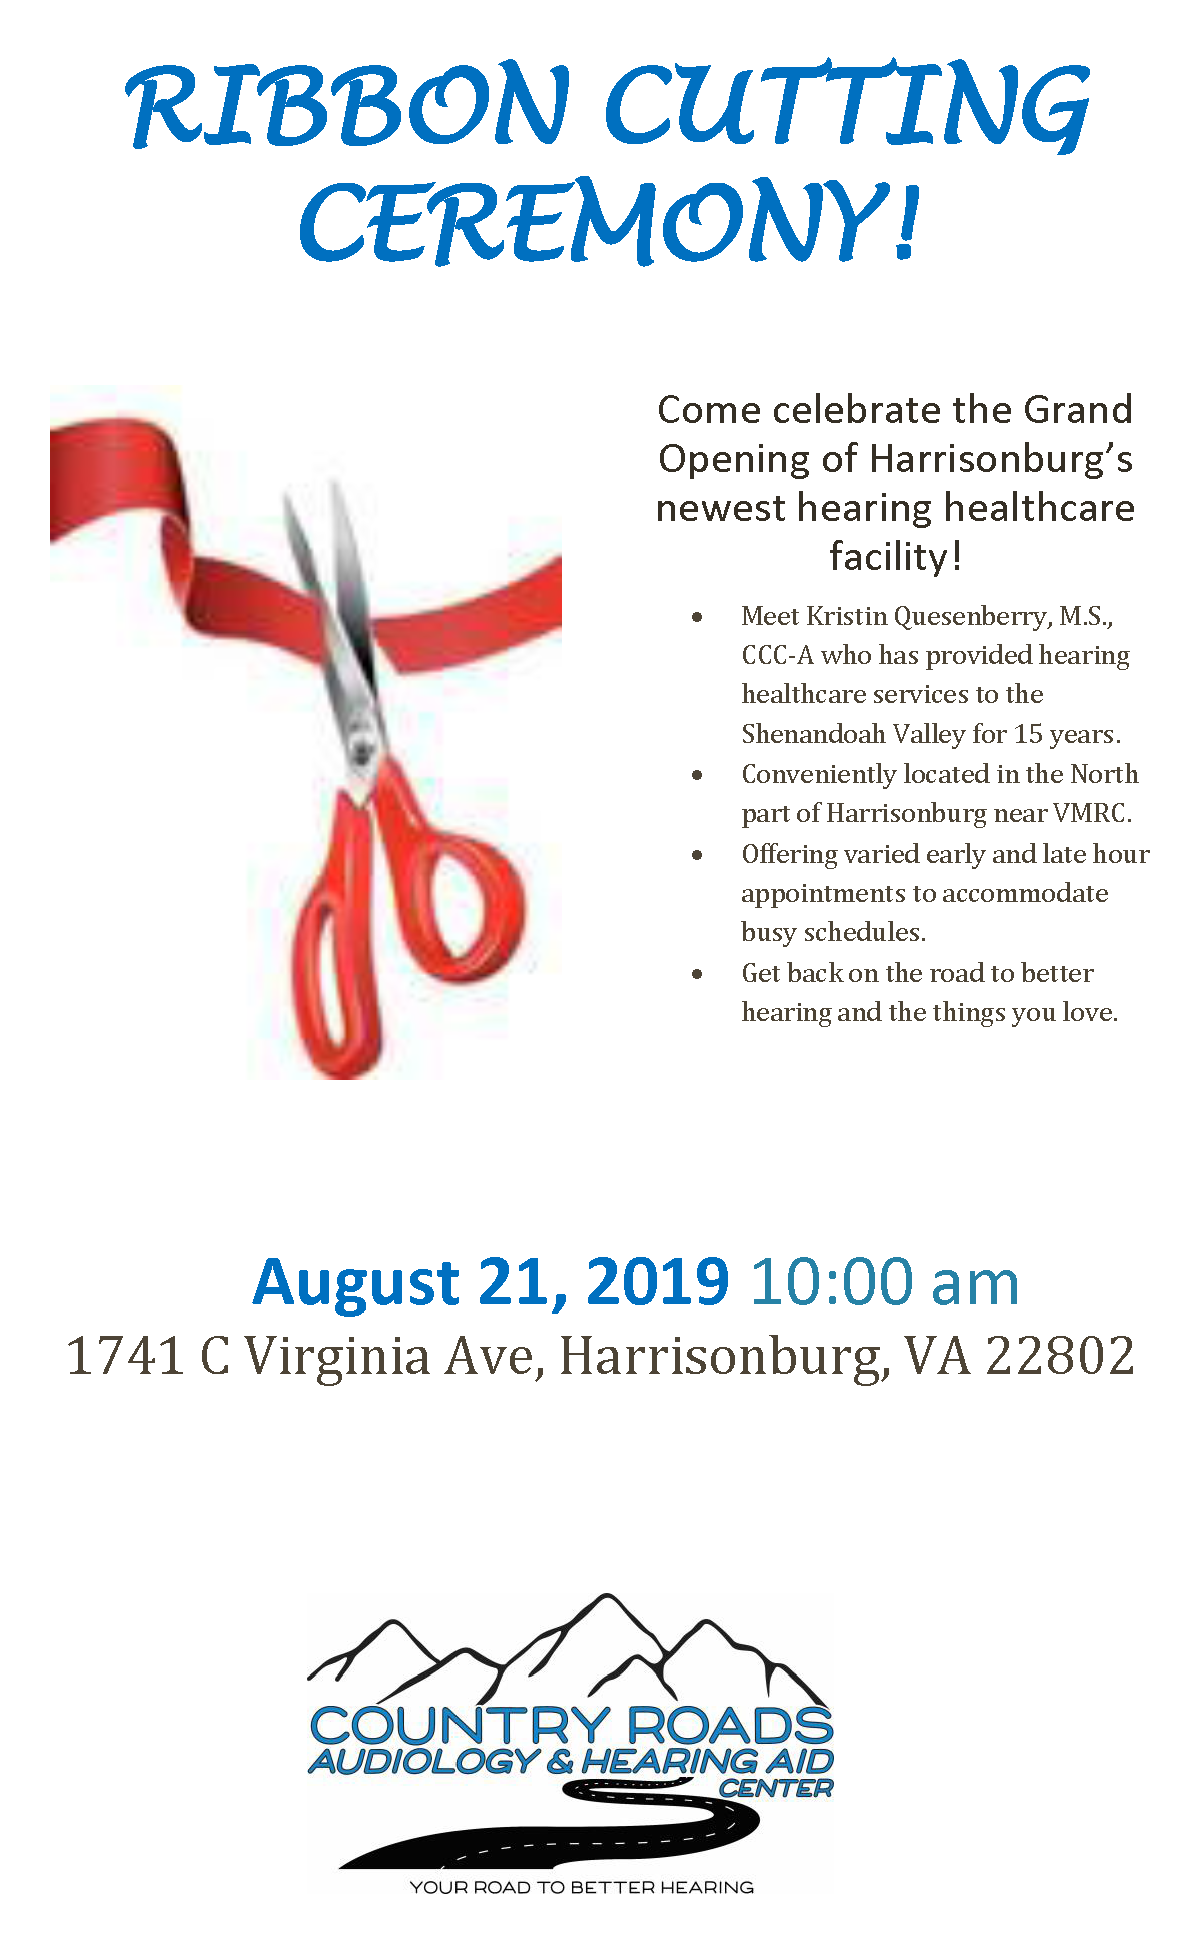 Country Roads Audiology & Hearing Aid Center Ribbon Cutting - Aug 21